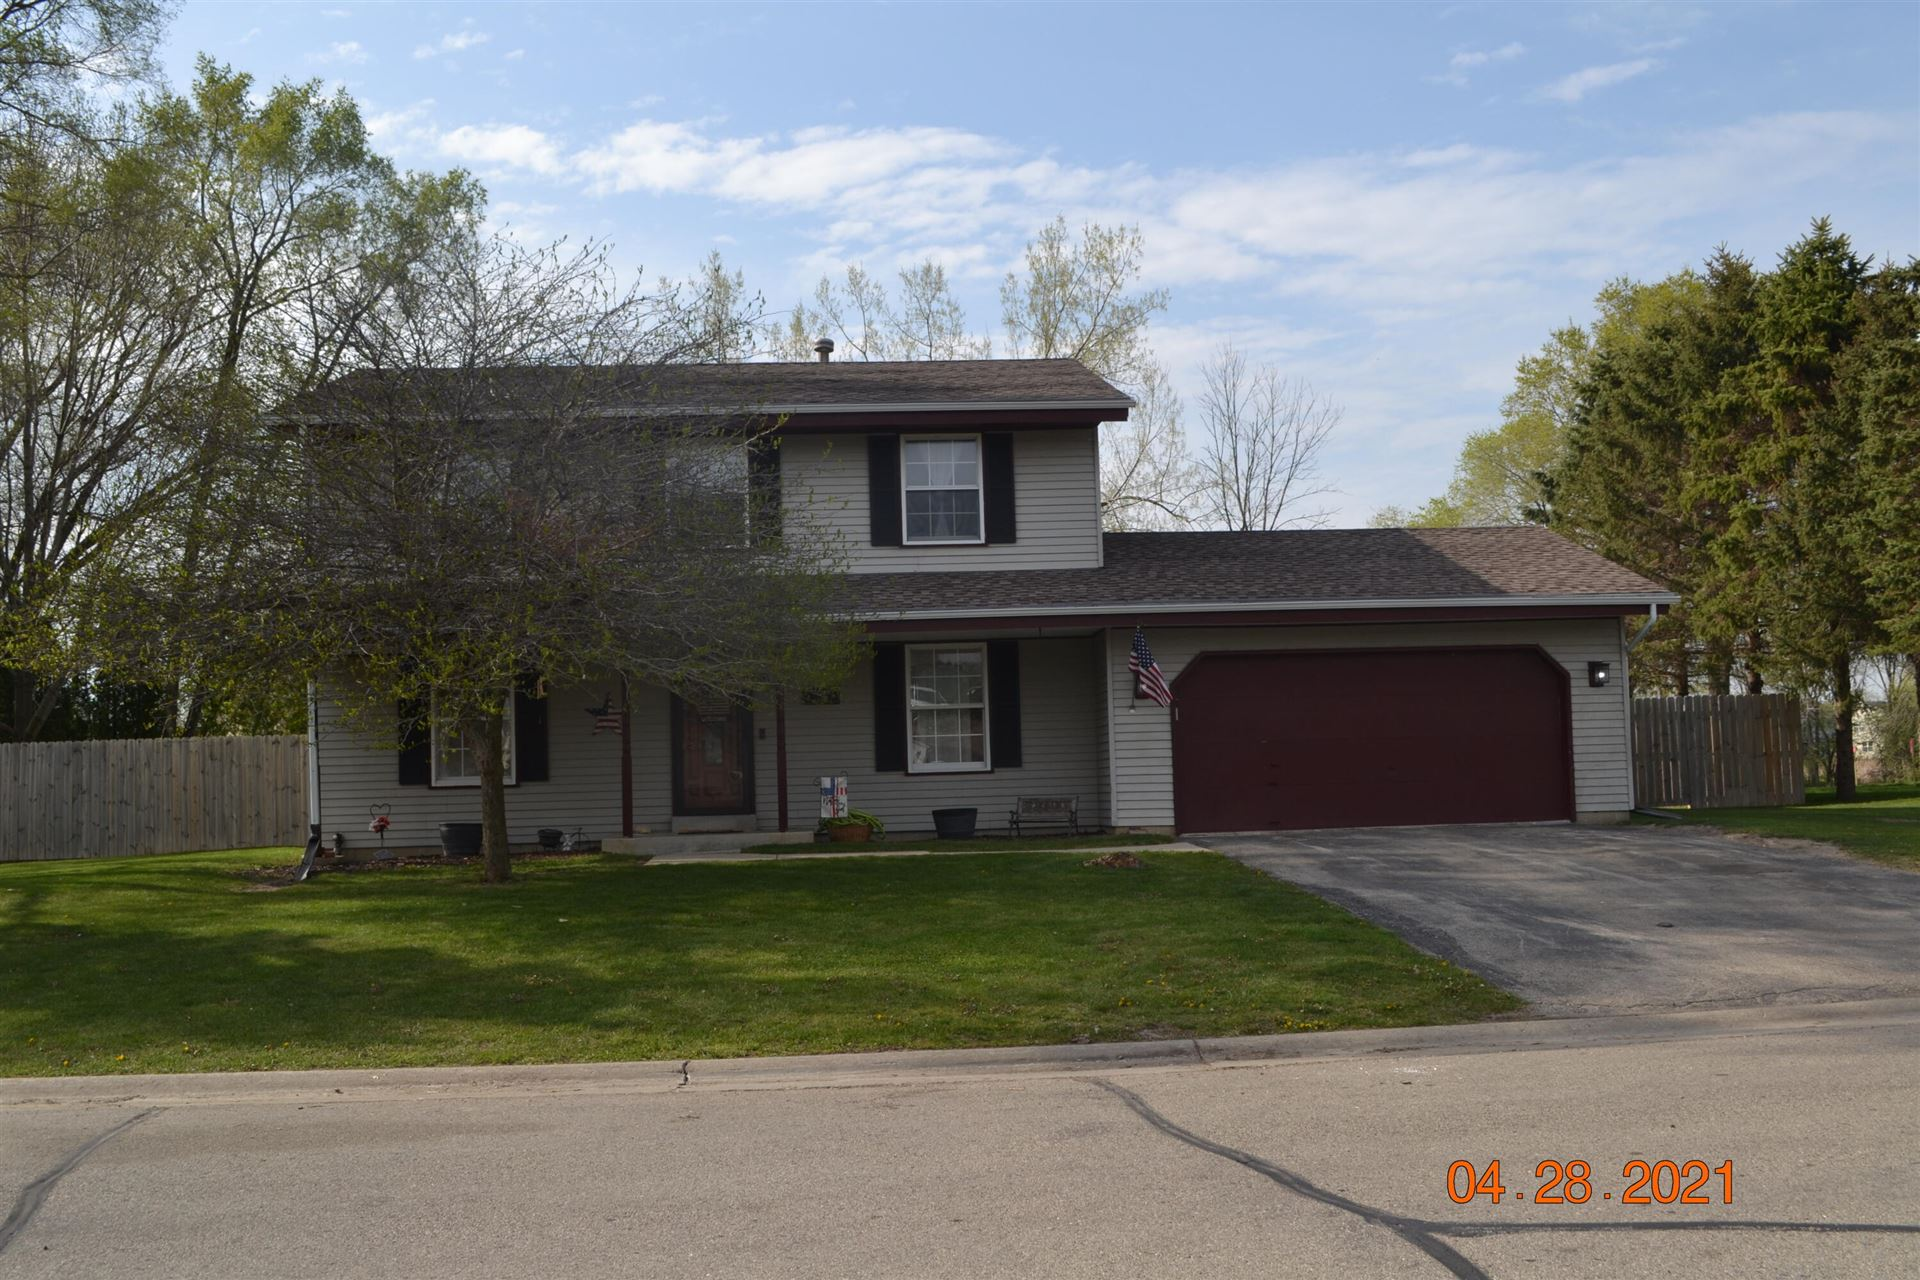 328 Foxmead Dr, Waterford, WI 53185 - #: 1737750